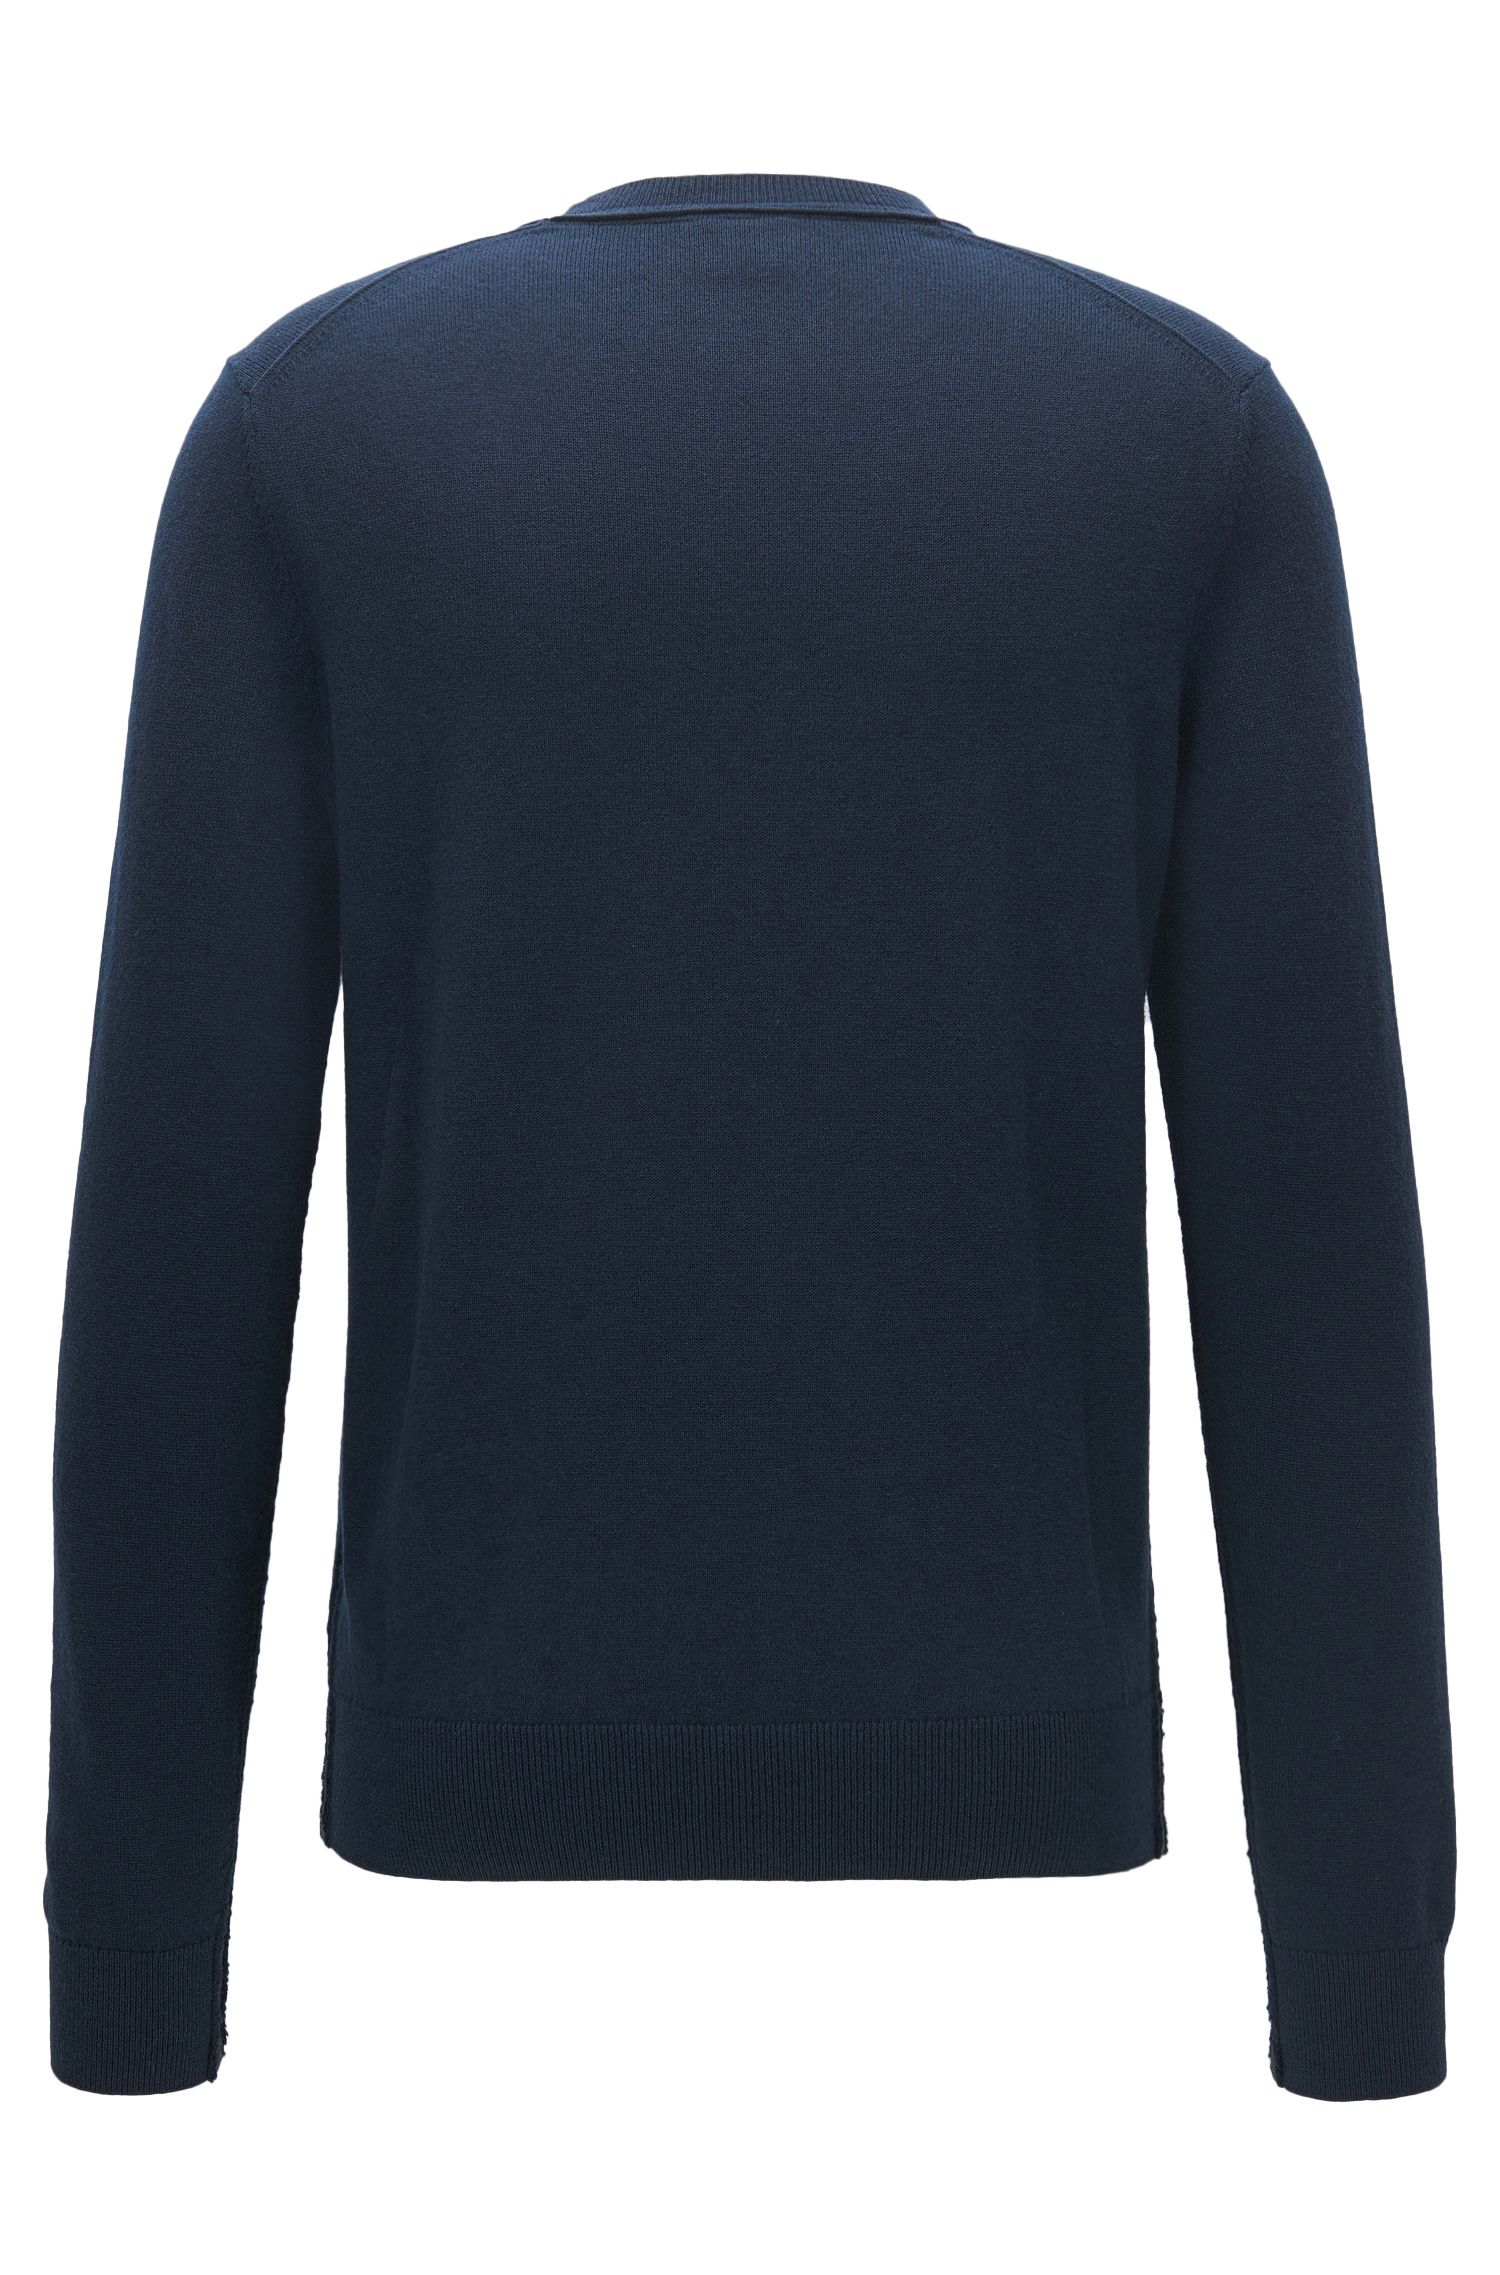 Lightweight sweater with broken-edge detailing